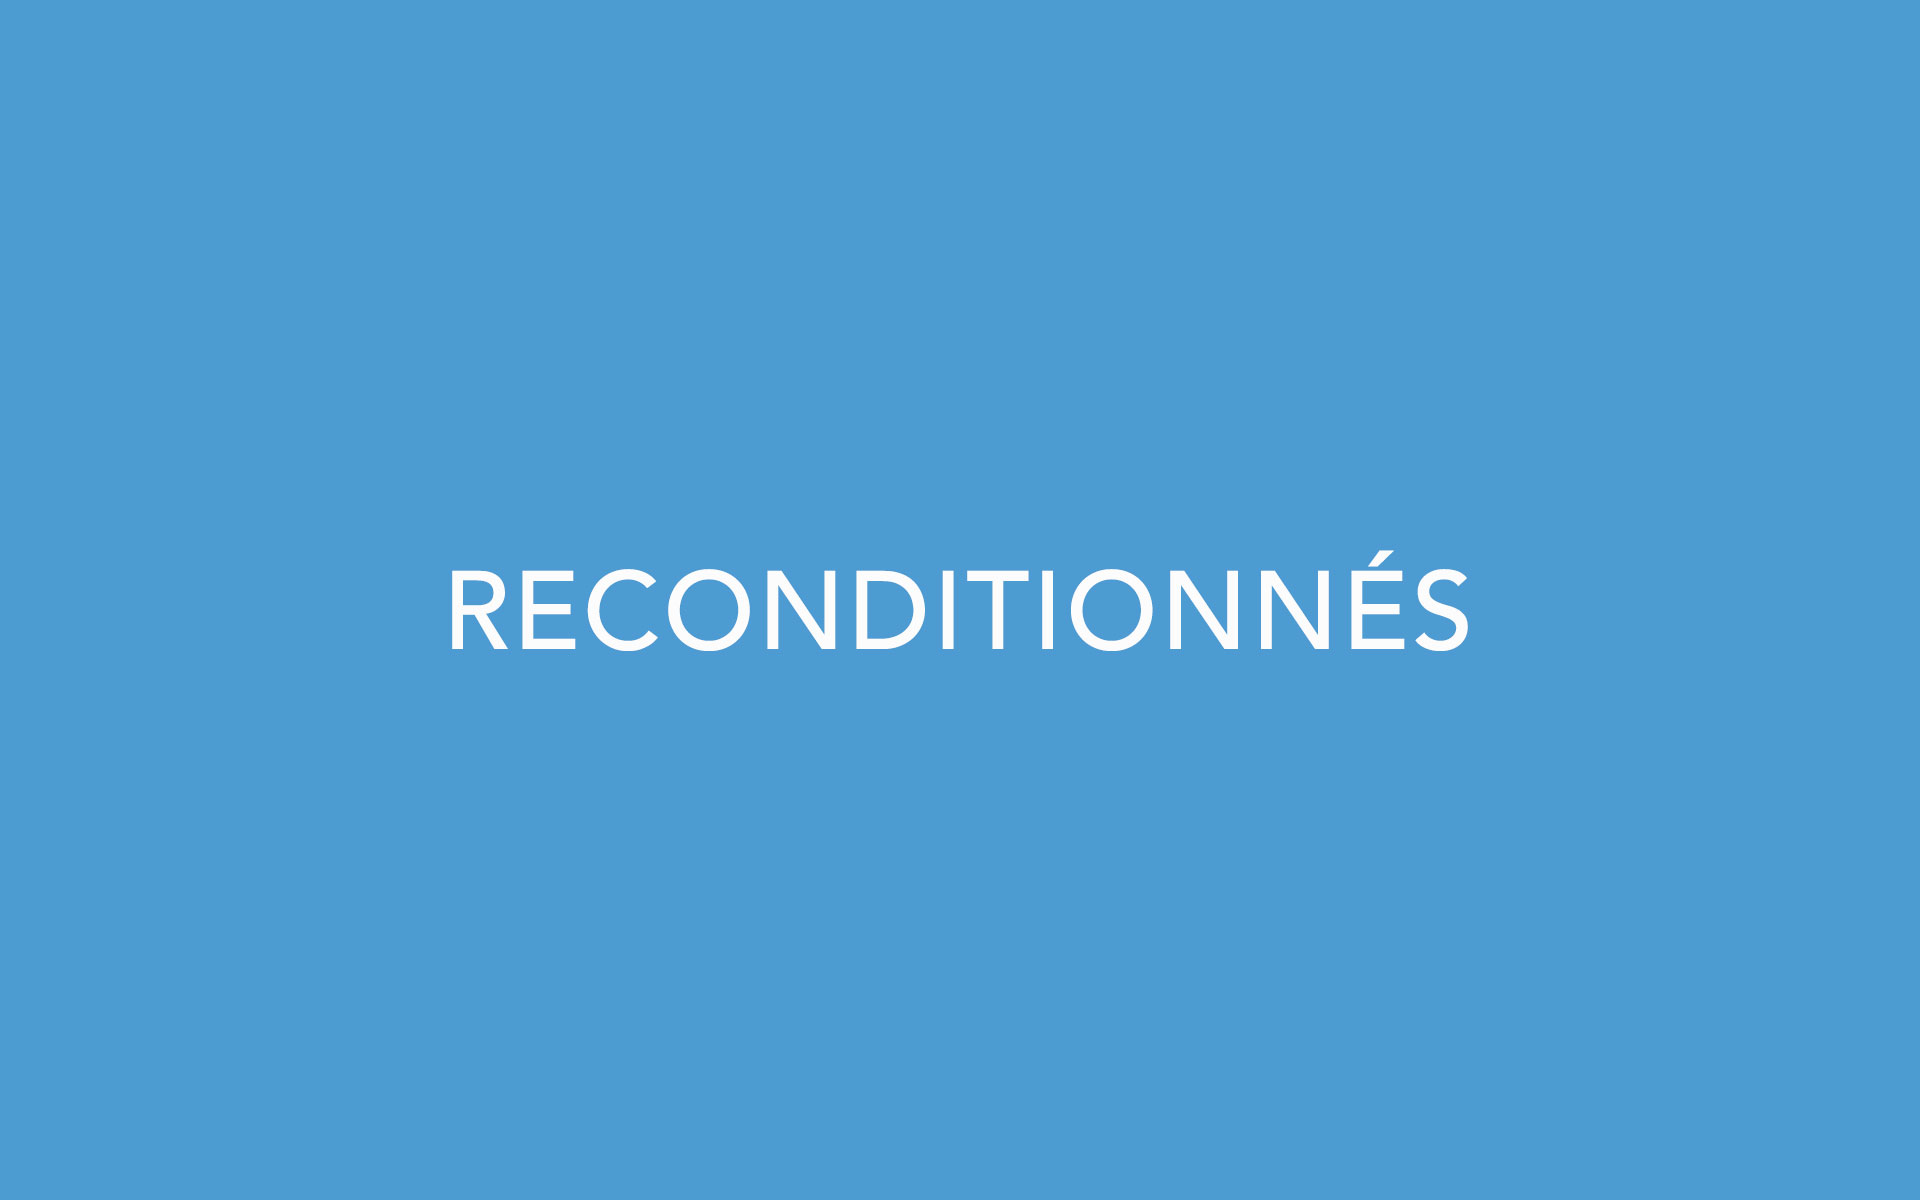 reconditionnés2